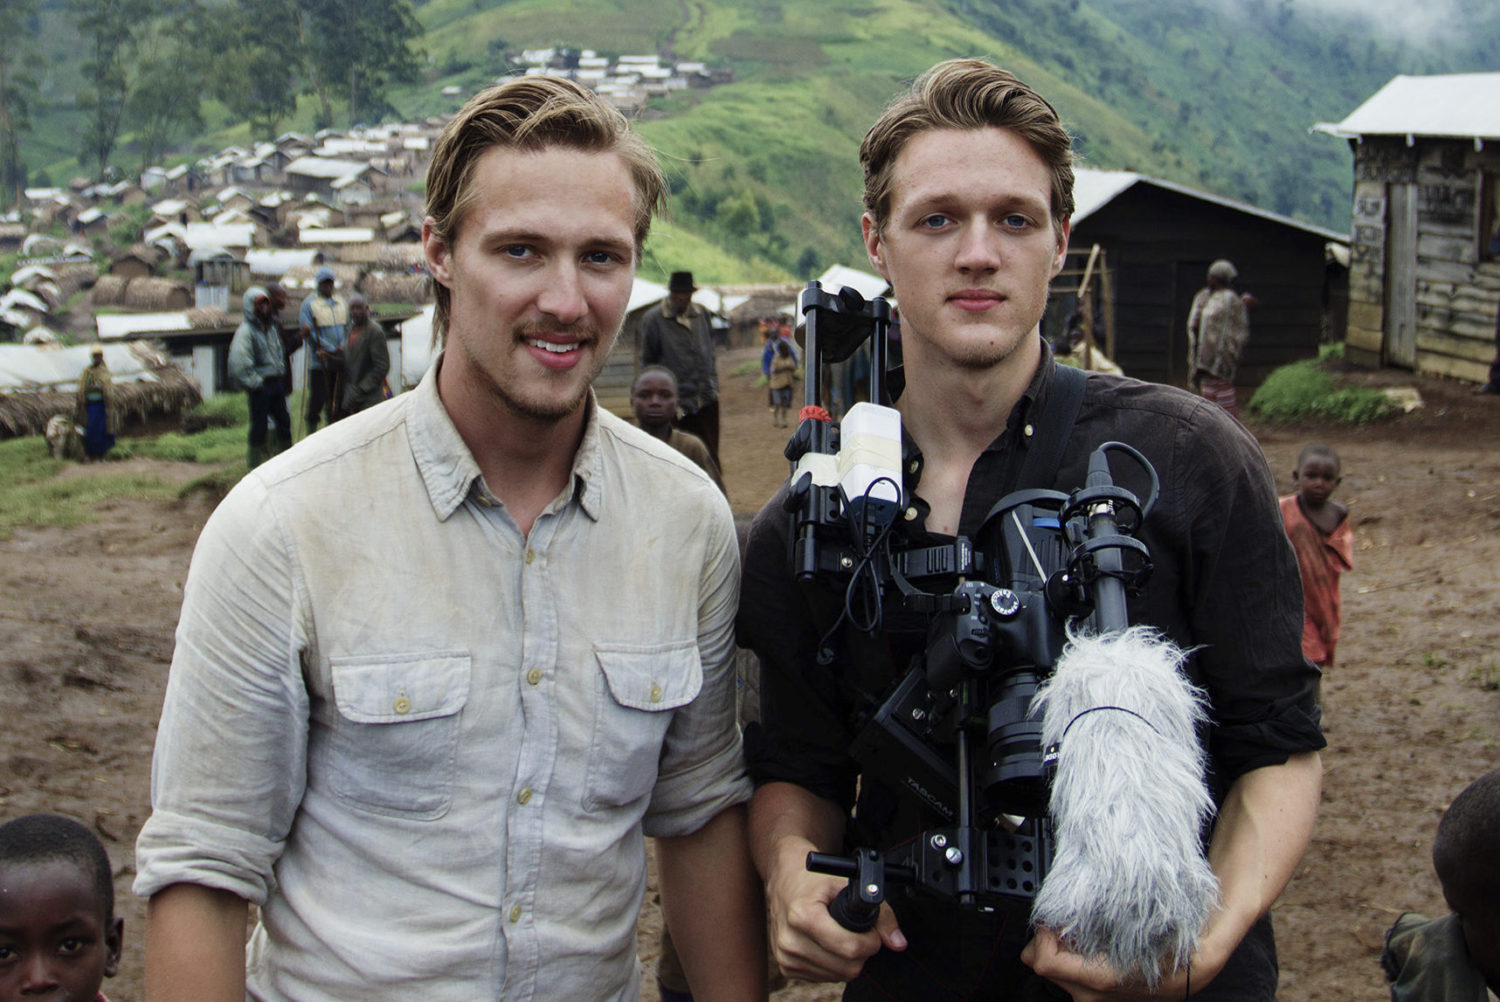 Dennis and Patrick Weinert in the DR Congo, 2016.